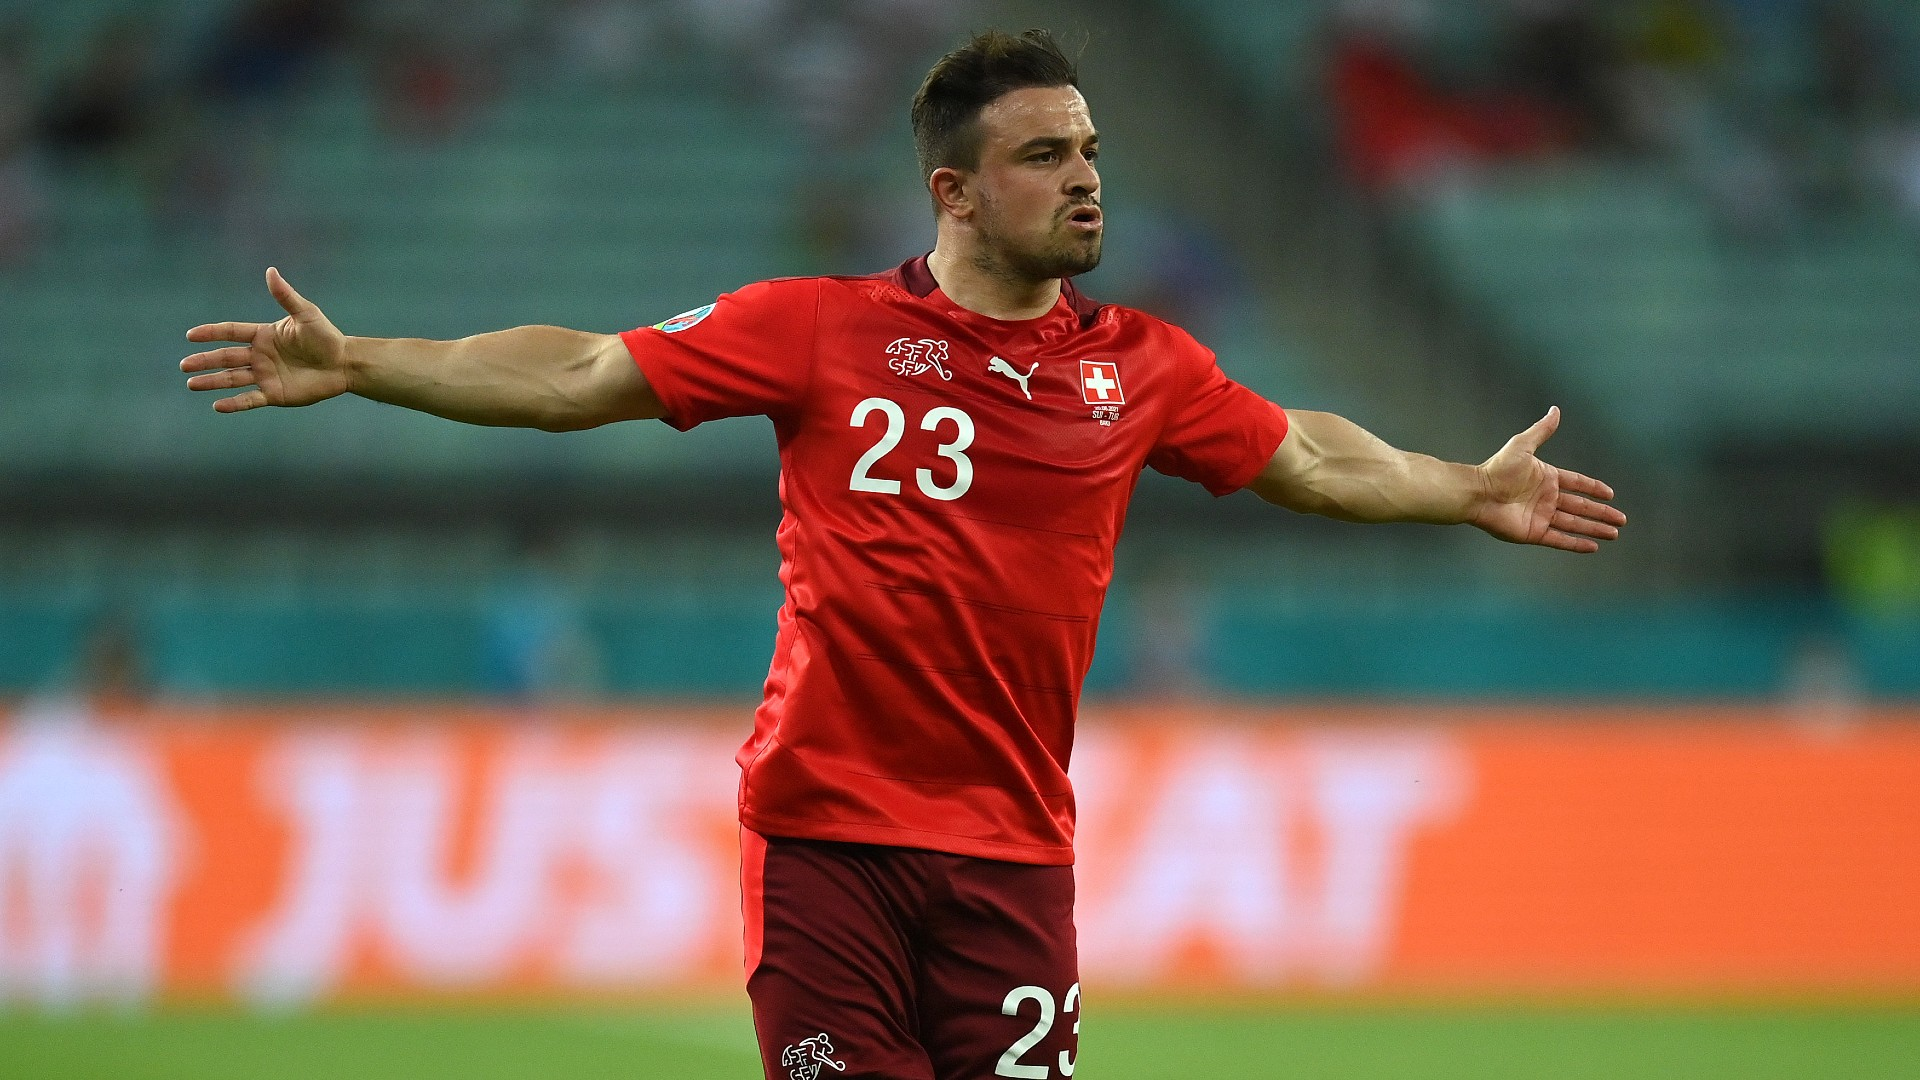 Euro 2020: Switzerland 3-1 Turkey full match reaction and quotes: Shaqiri 'pleased' with win after sealing third-place shot